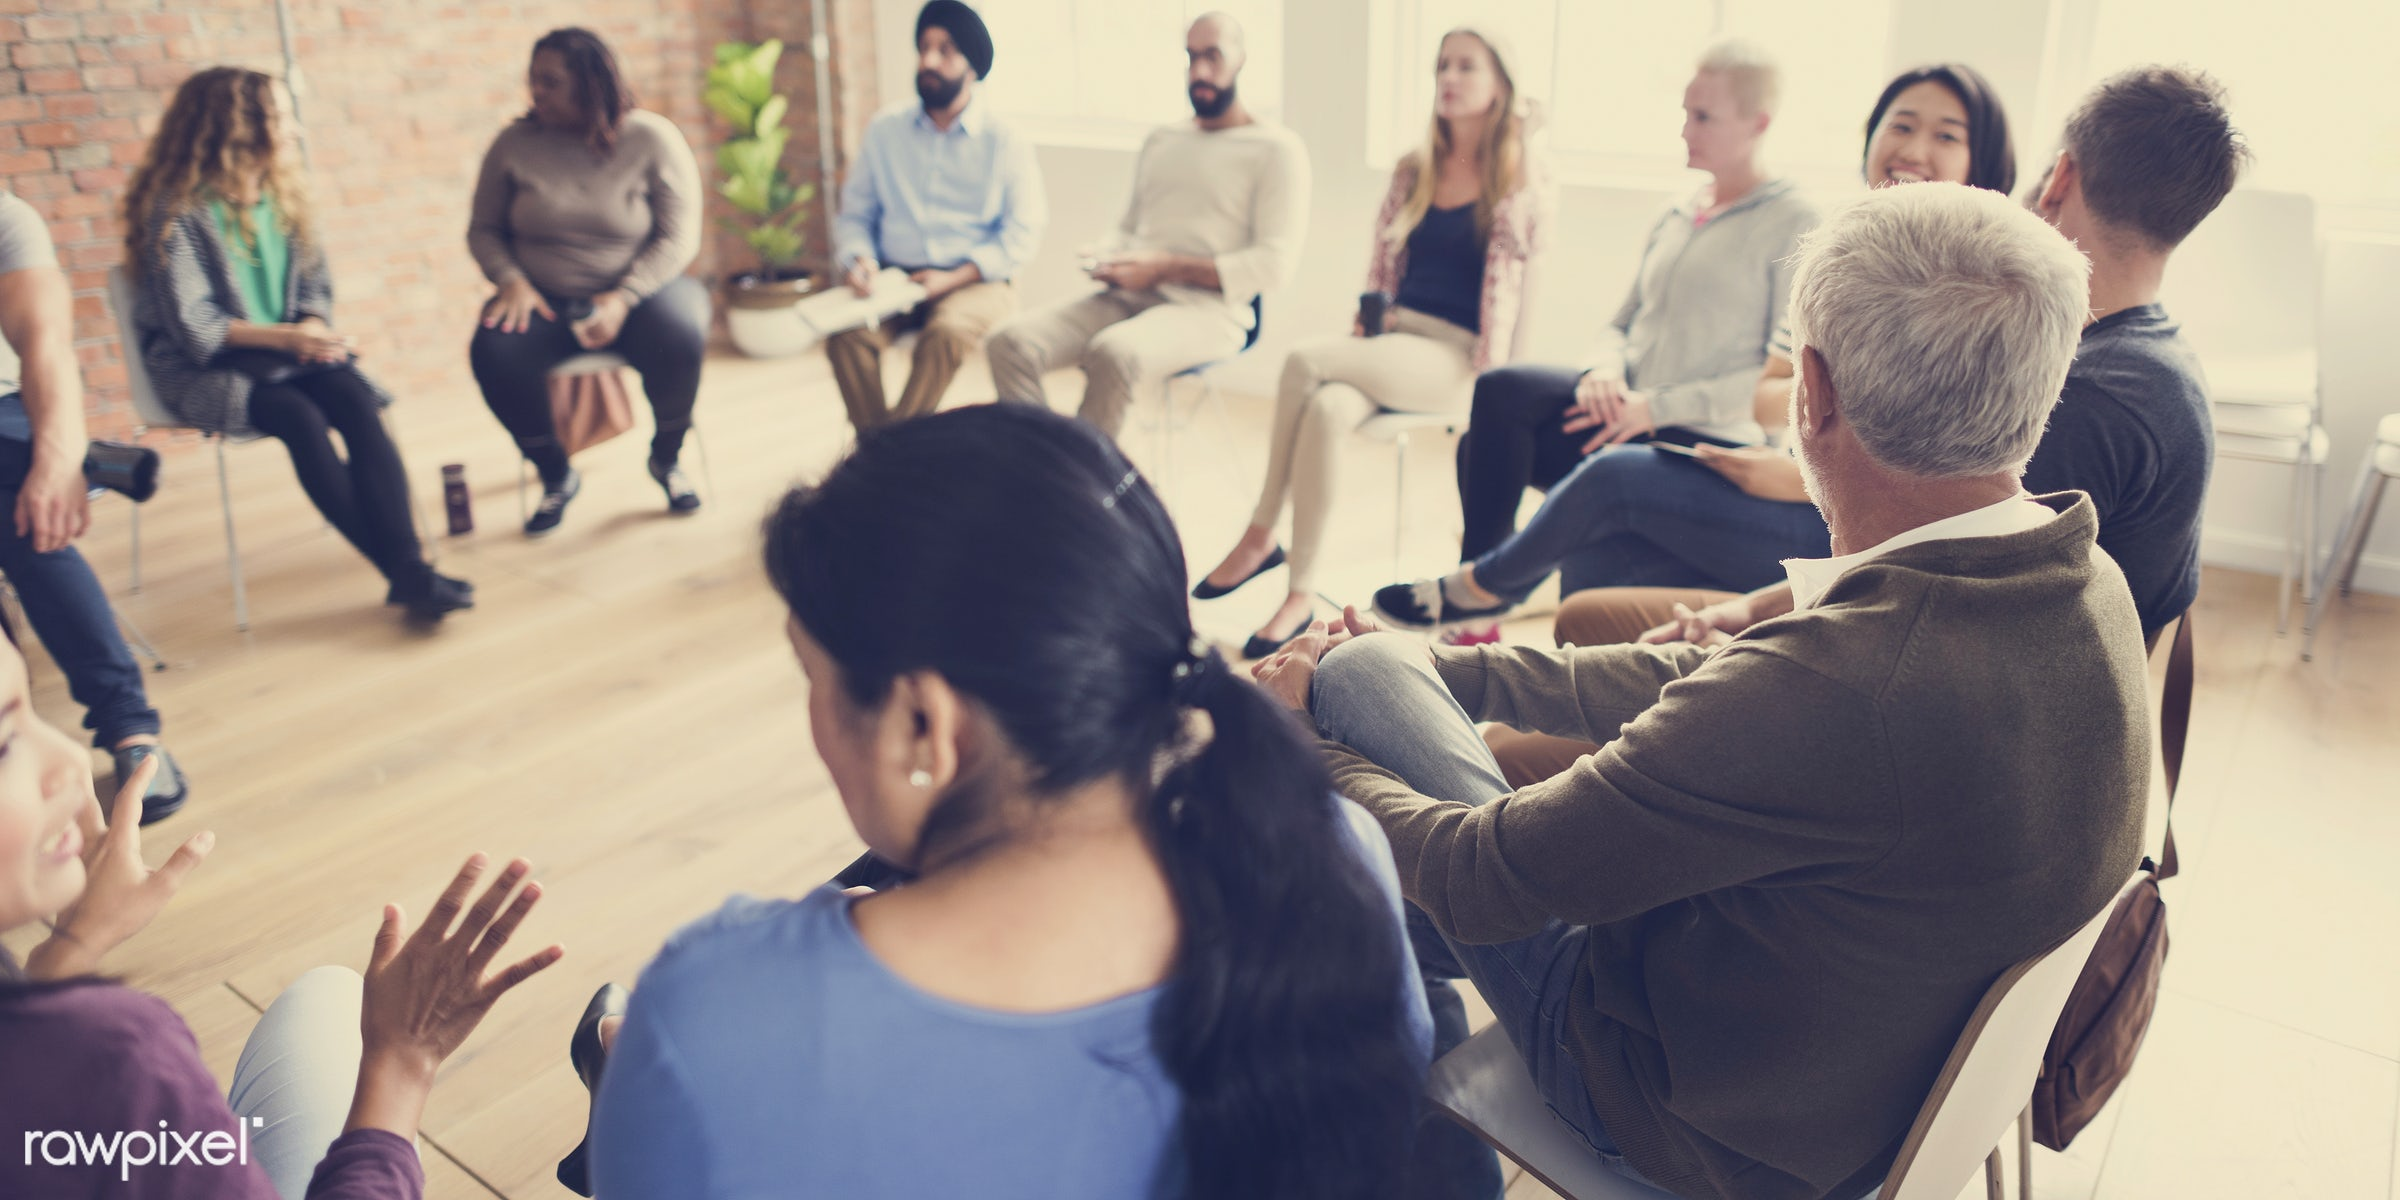 person, discussion, people, together, teamwork, help, communicate, social, event, woman, social events, connection, support...